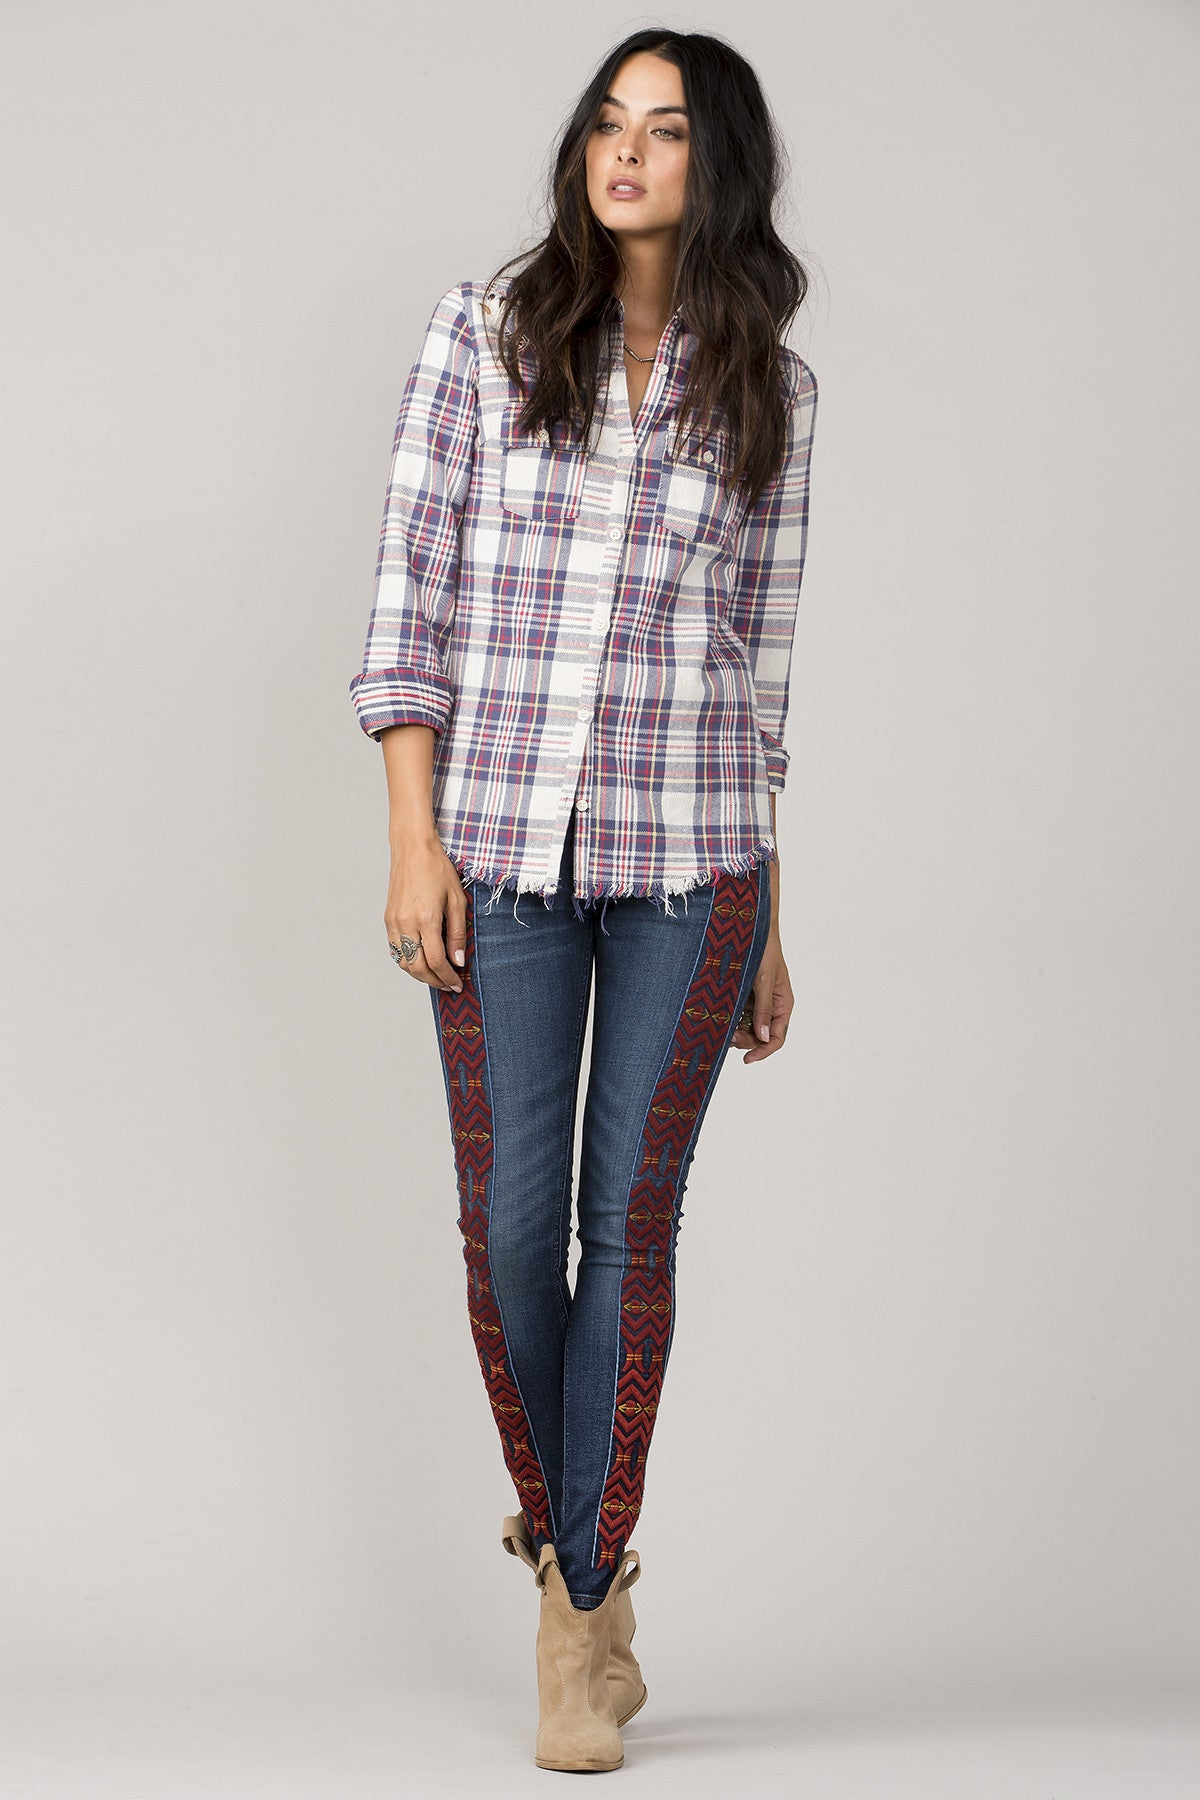 A Cut Above Plaid Top